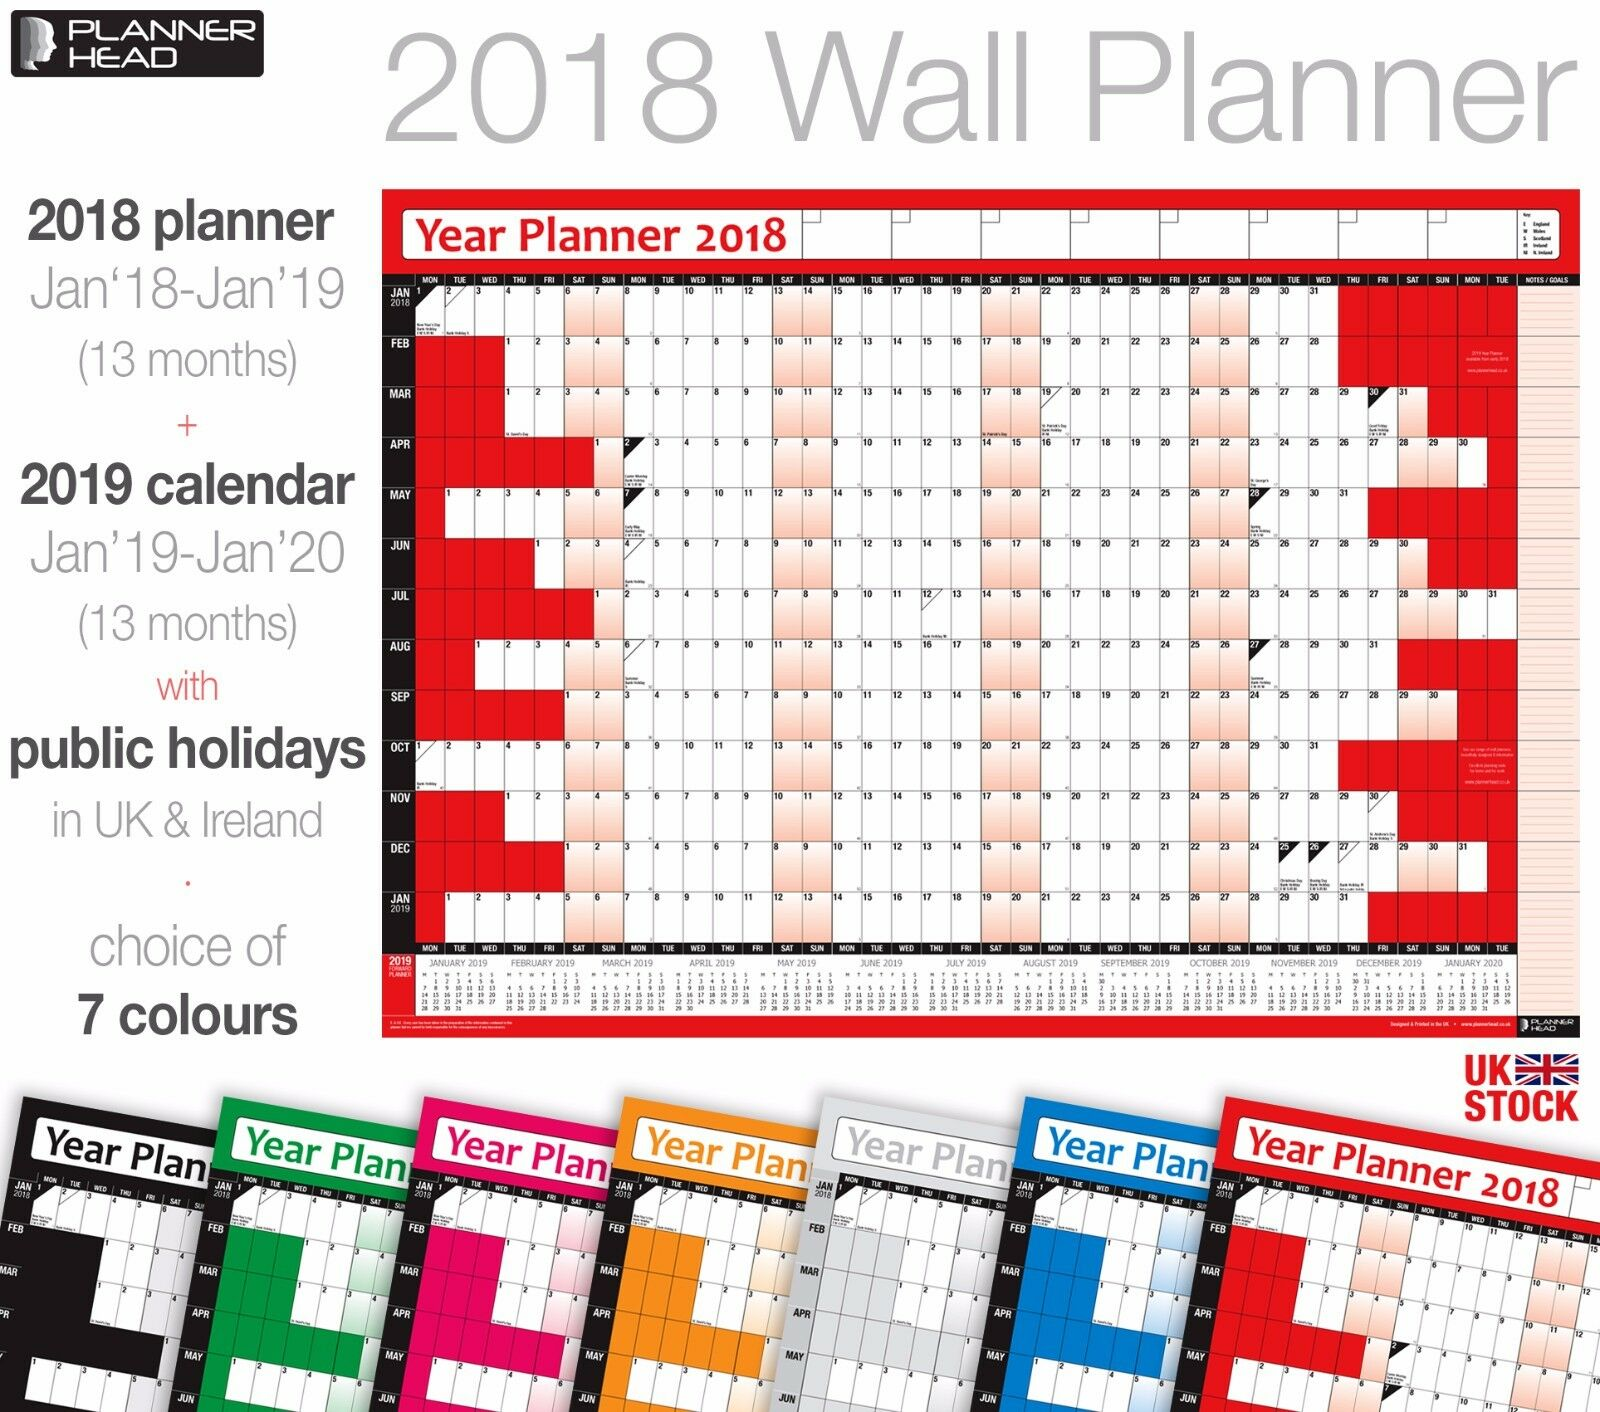 2018 Wall Planner Calendar Year Planner Wall Chart with 2019 Forward Planner ✔UK